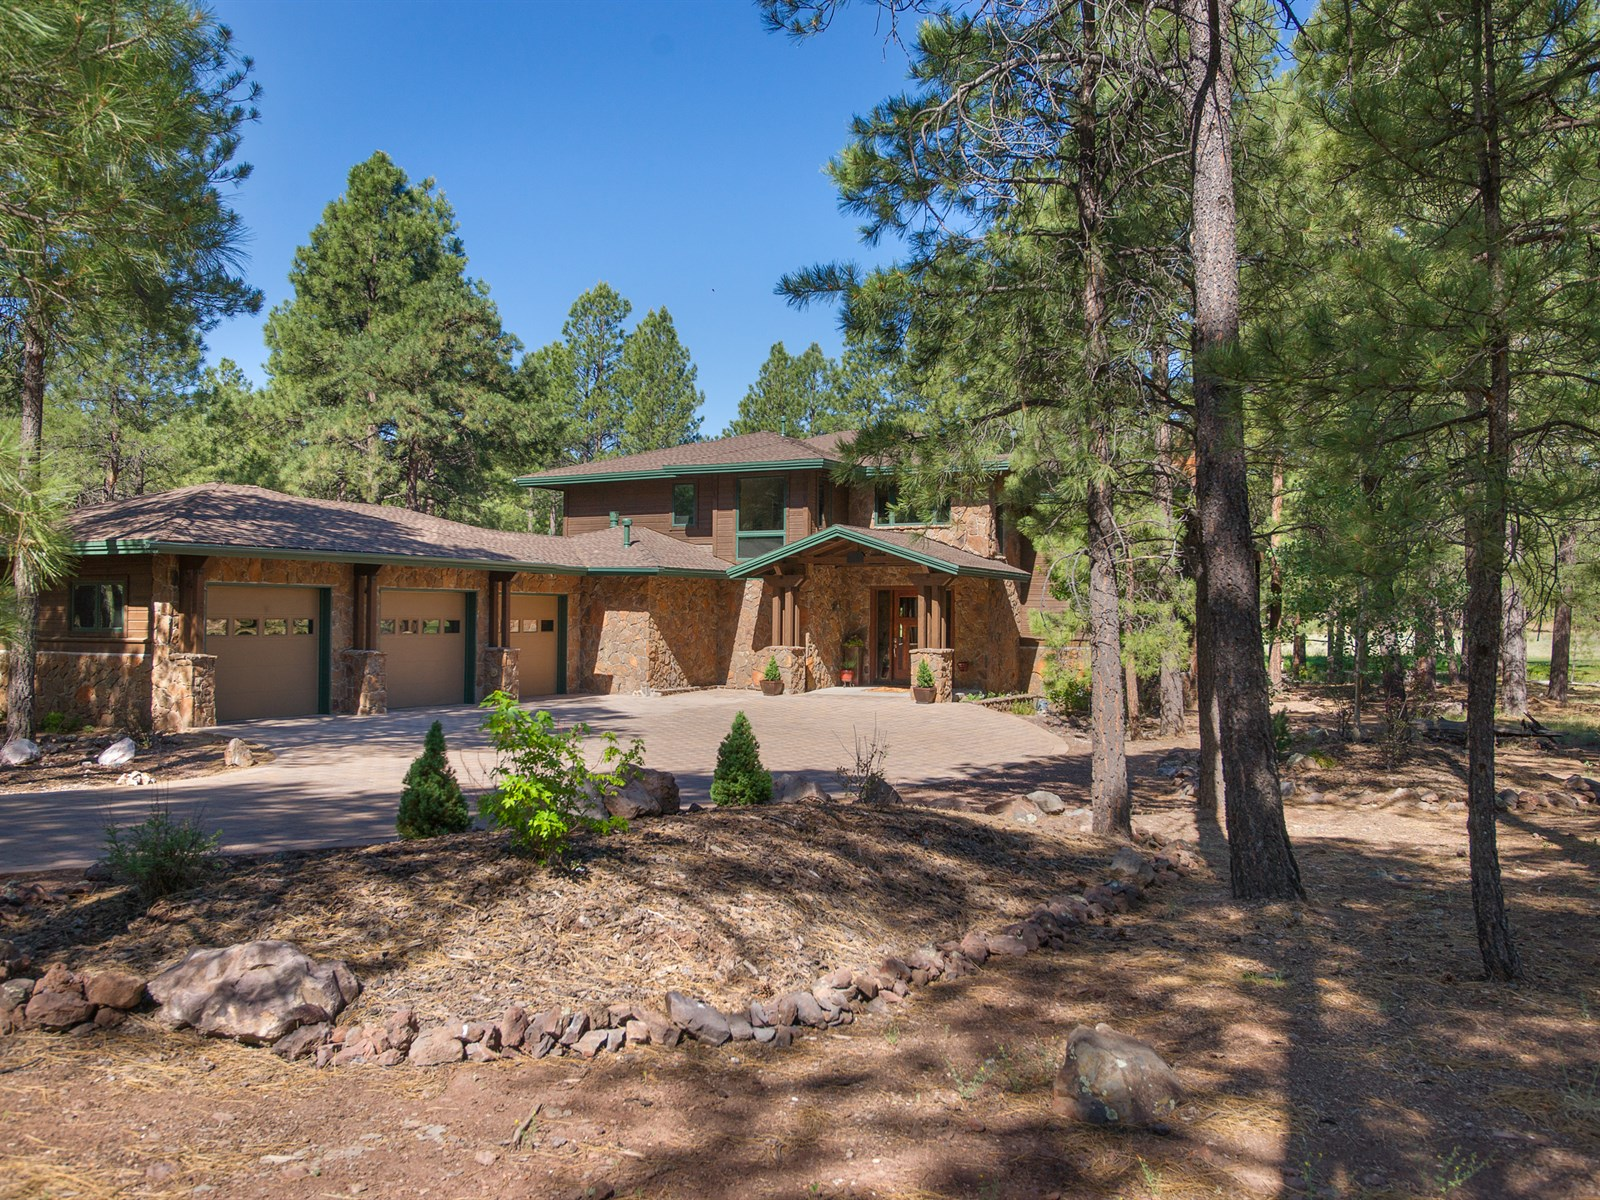 Single Family Home for Sale at Gorgeous Multi-Level Forest Highlands Craftsman home. 1780 Bessie Kidd Best Flagstaff, Arizona 86001 United States